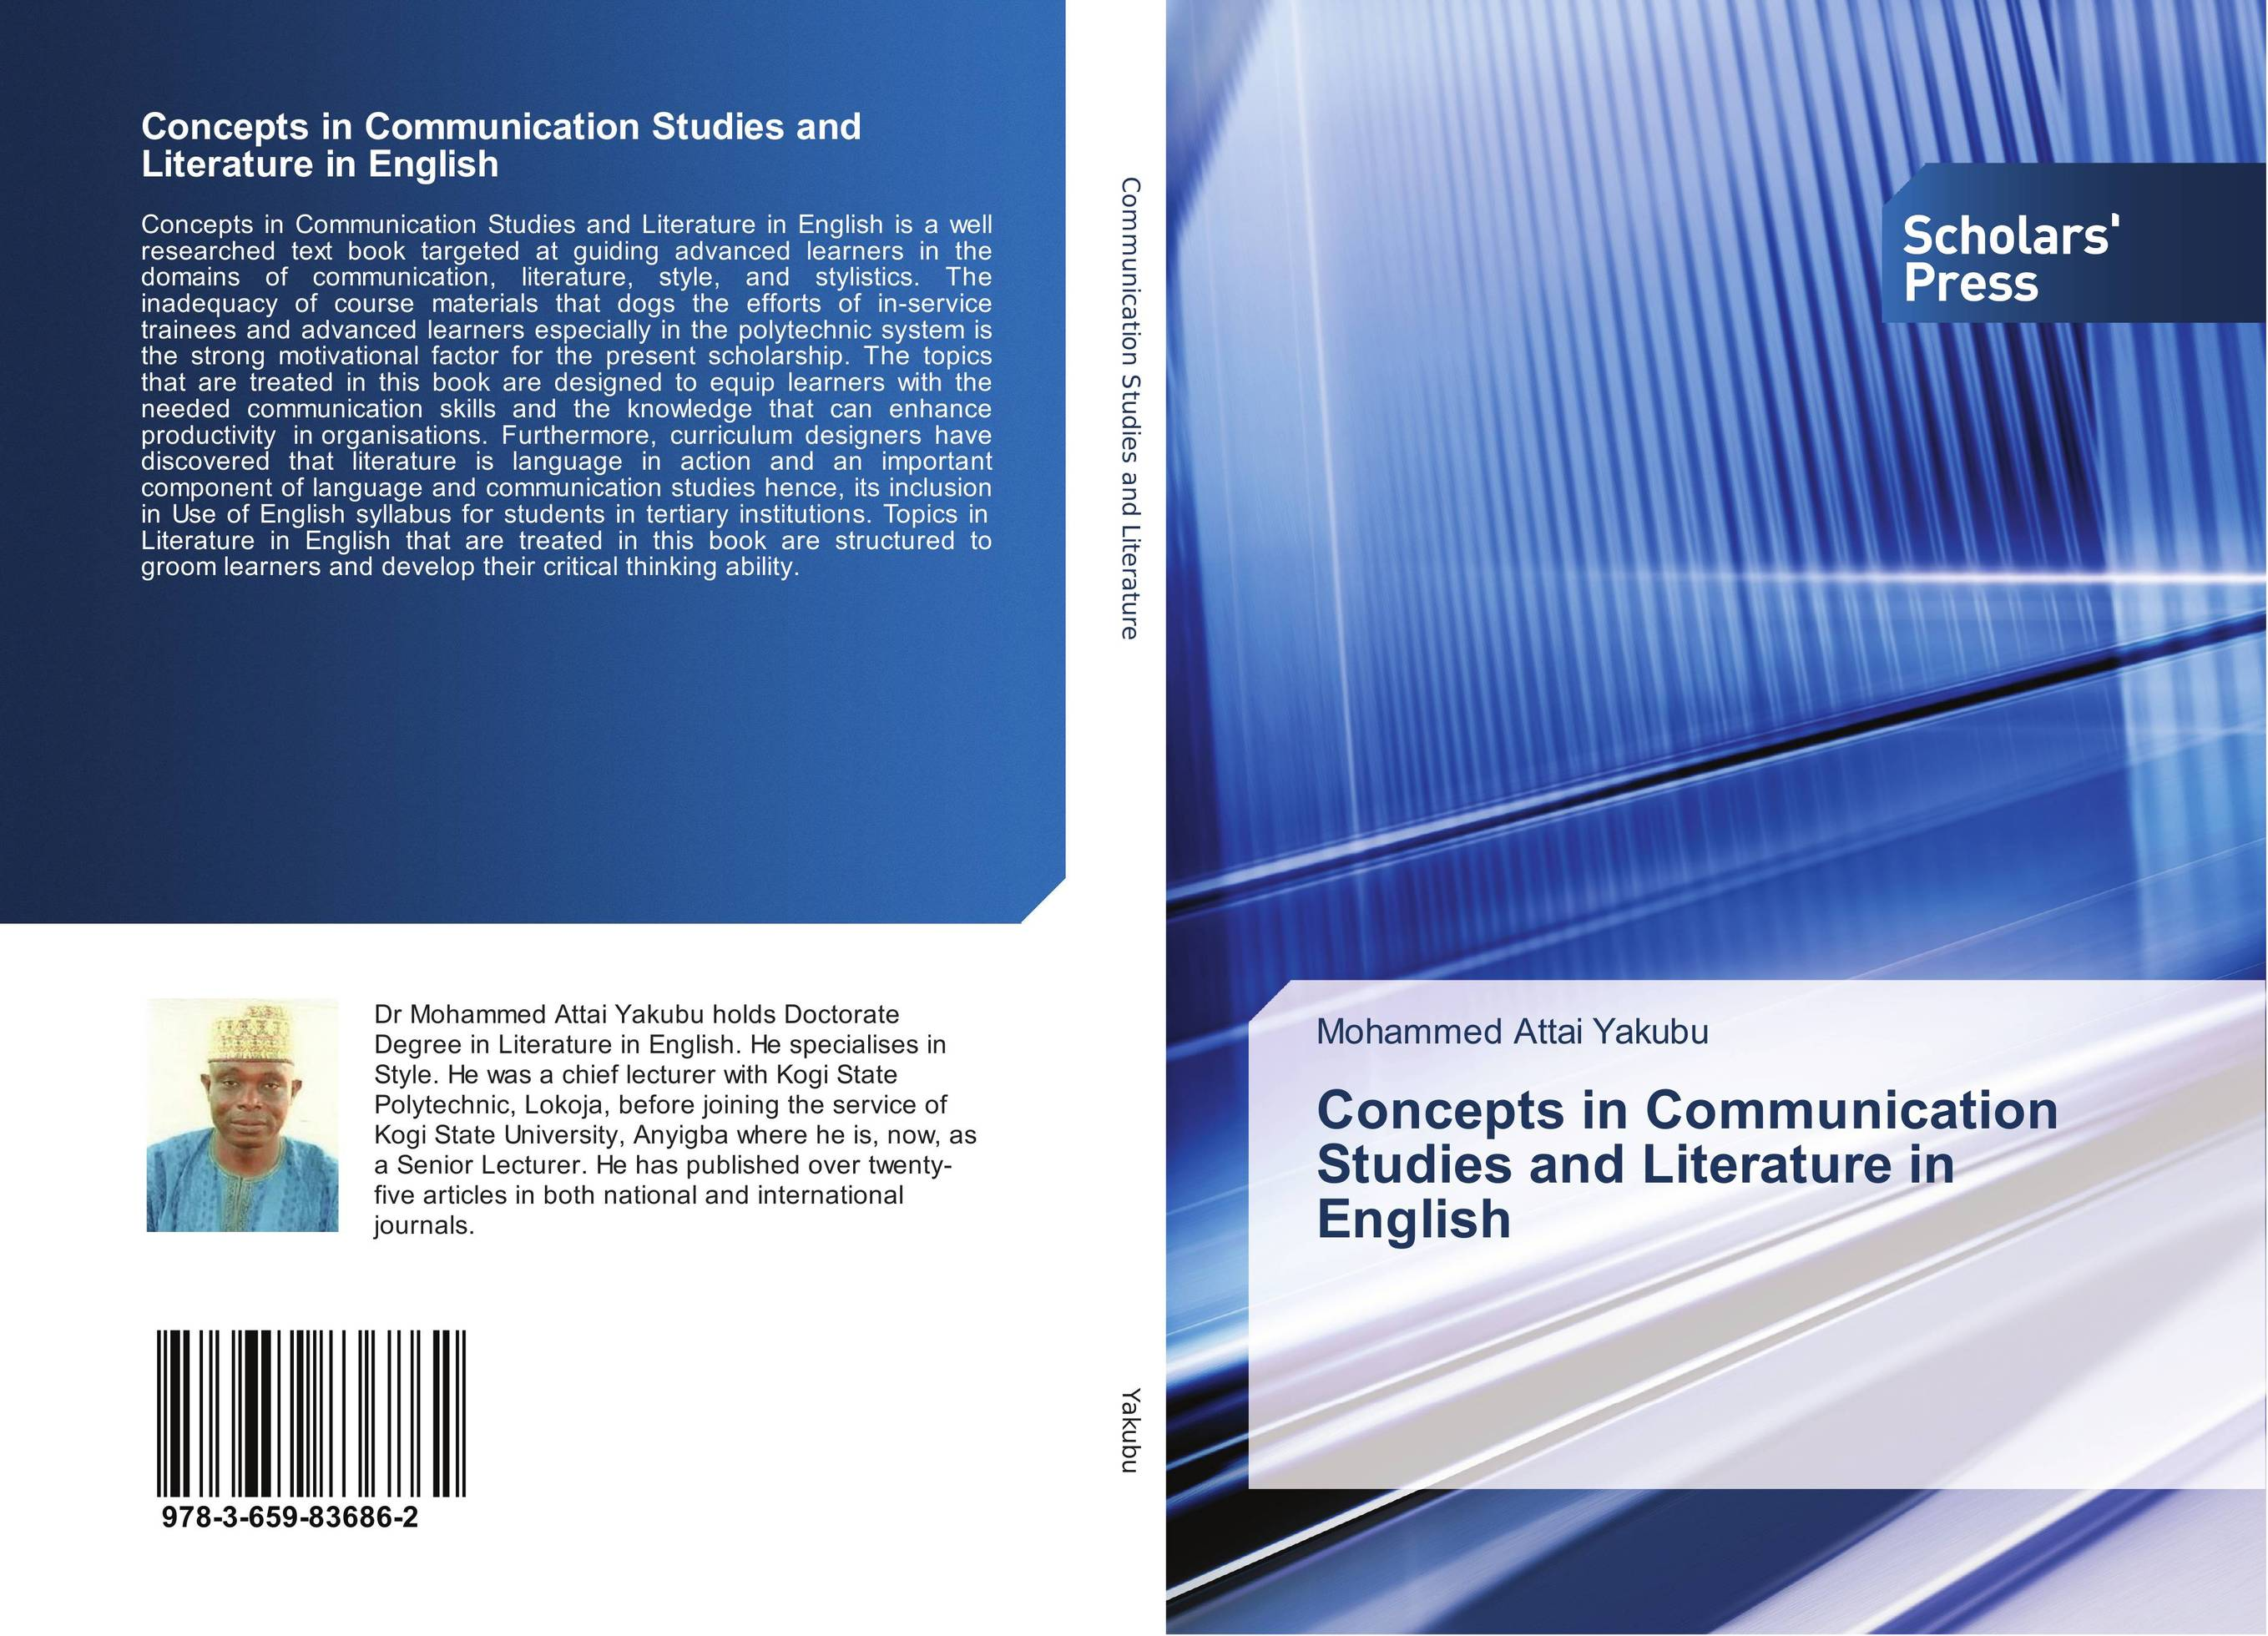 Concepts in Communication Studies and Literature in English concepts of gingiva and gingival crevicular fluid